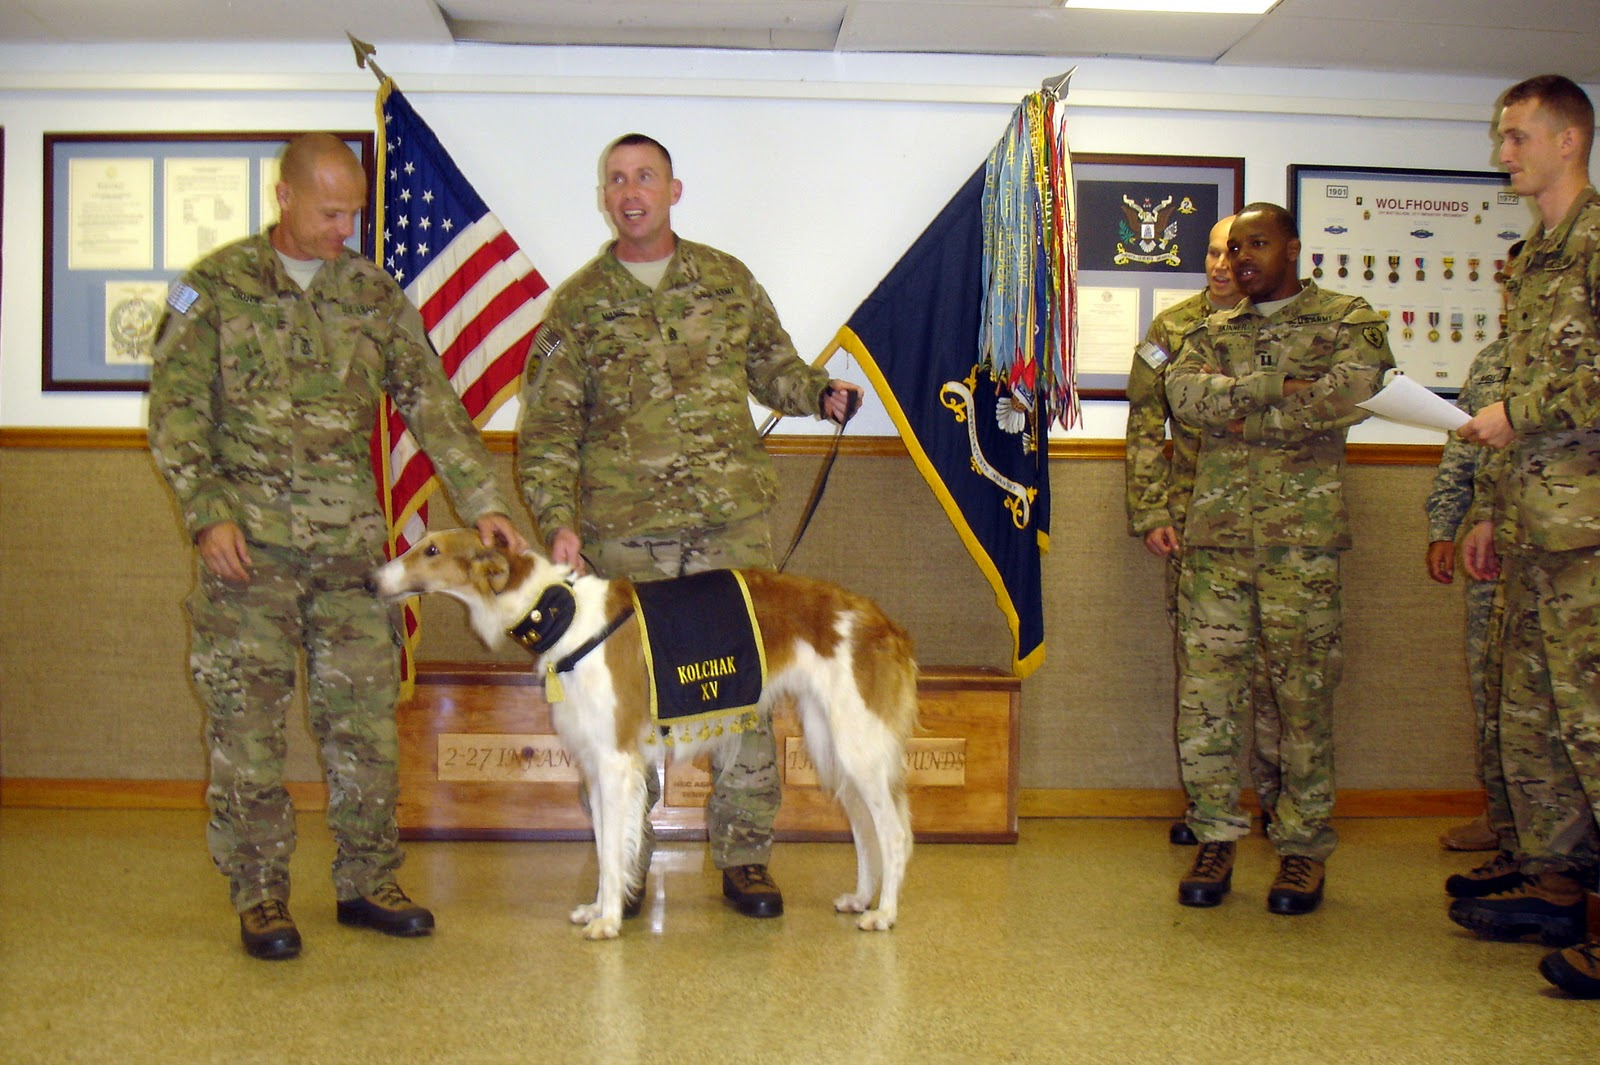 Kolchak Xv 27th Infantry Regiment Quot Wolfhounds Quot April 2011